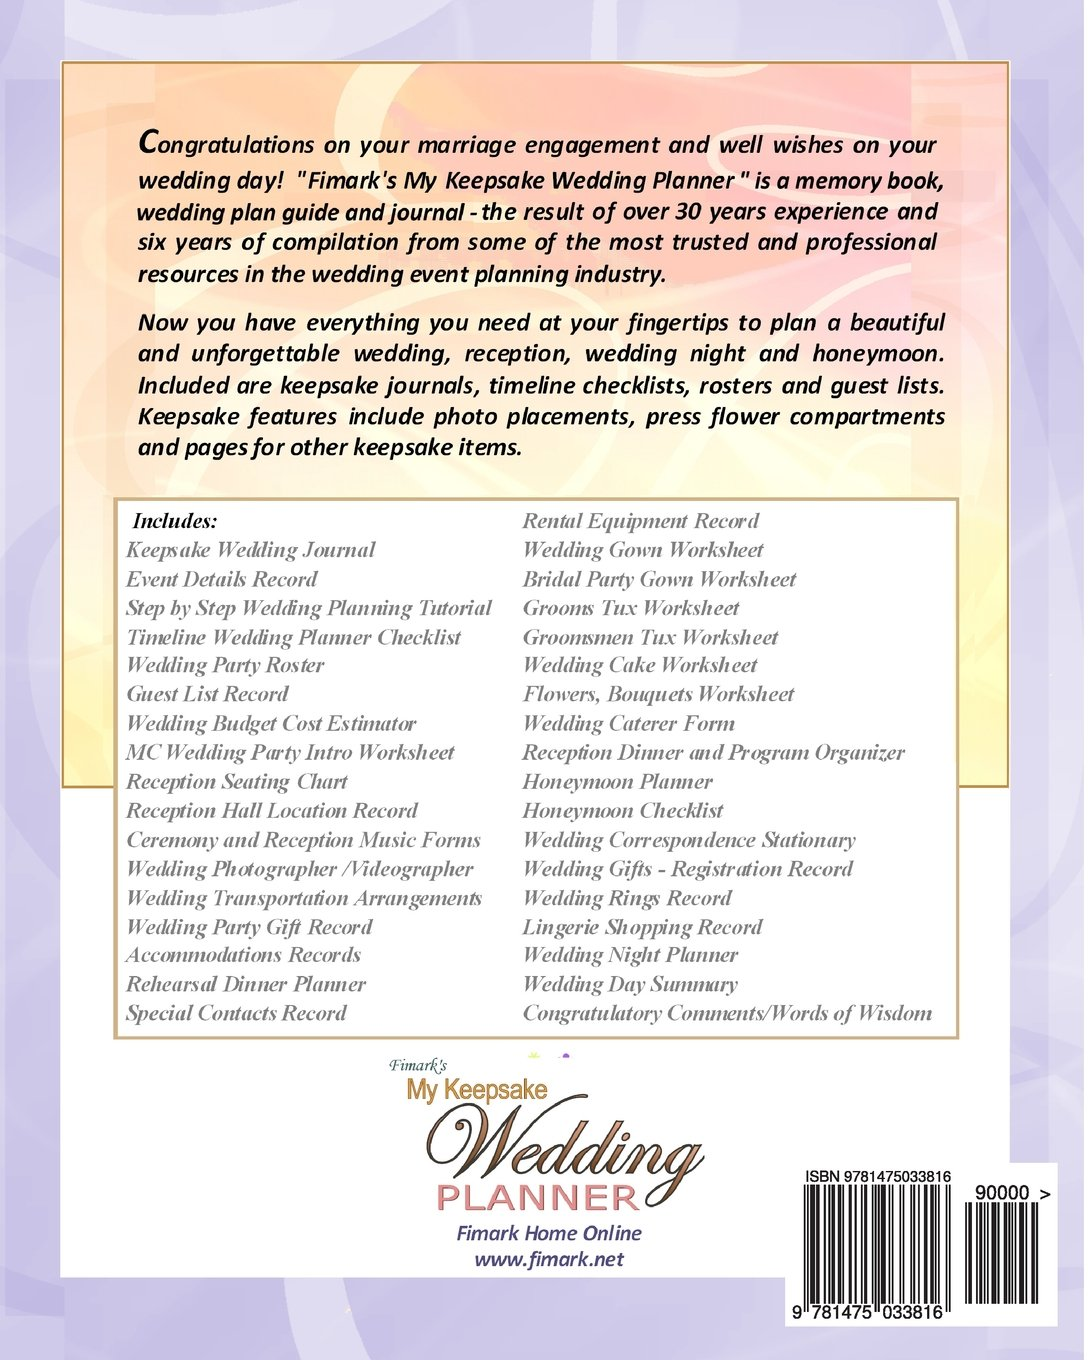 Fimarks My Keepsake Wedding Planner Mark Angelo Askew Brenda